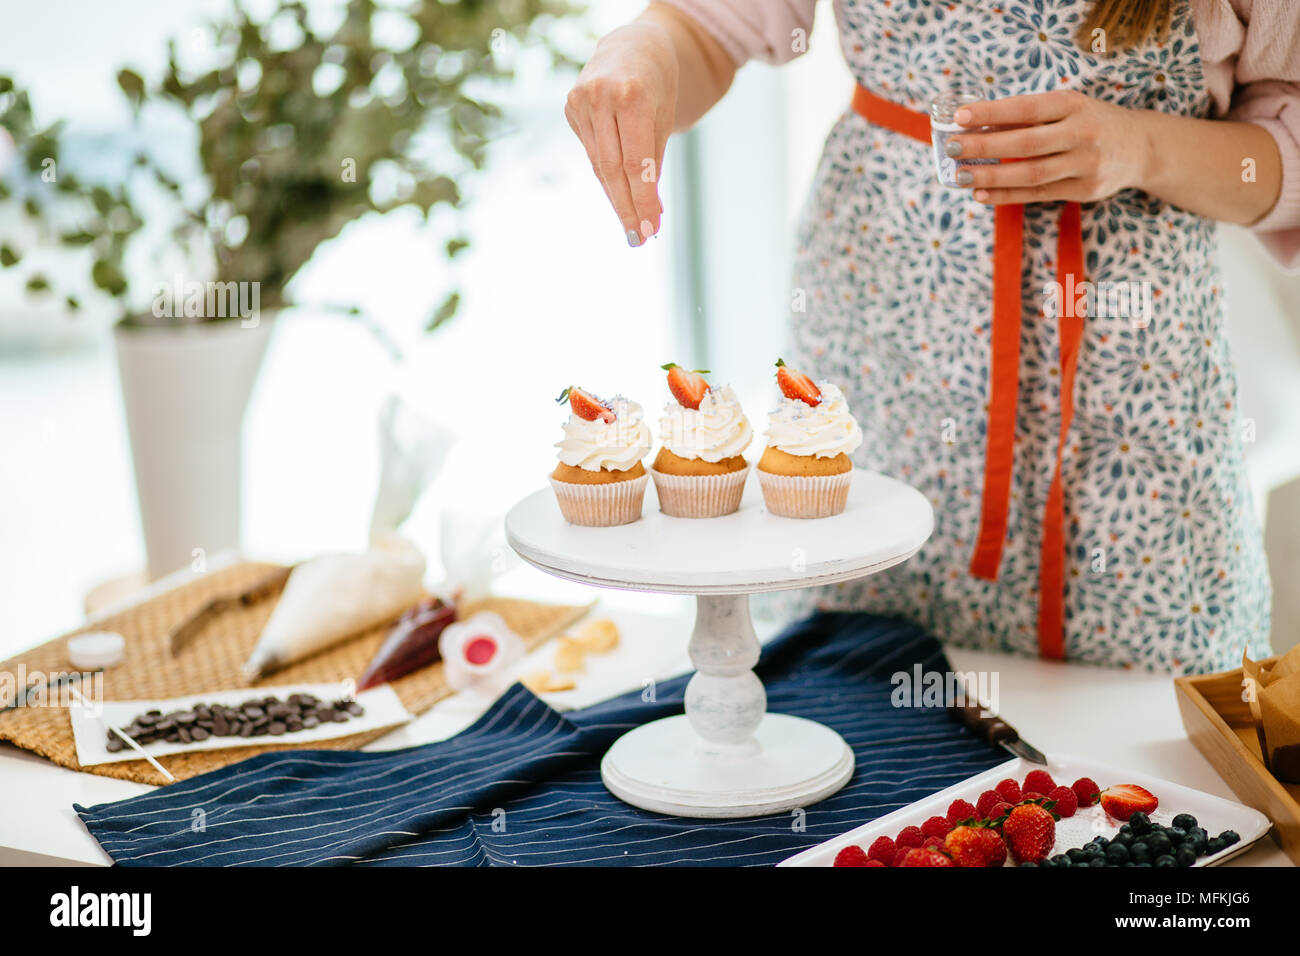 Female baker in mottled dress decoratig creamy top cupcakes with coloured topping - Stock Image